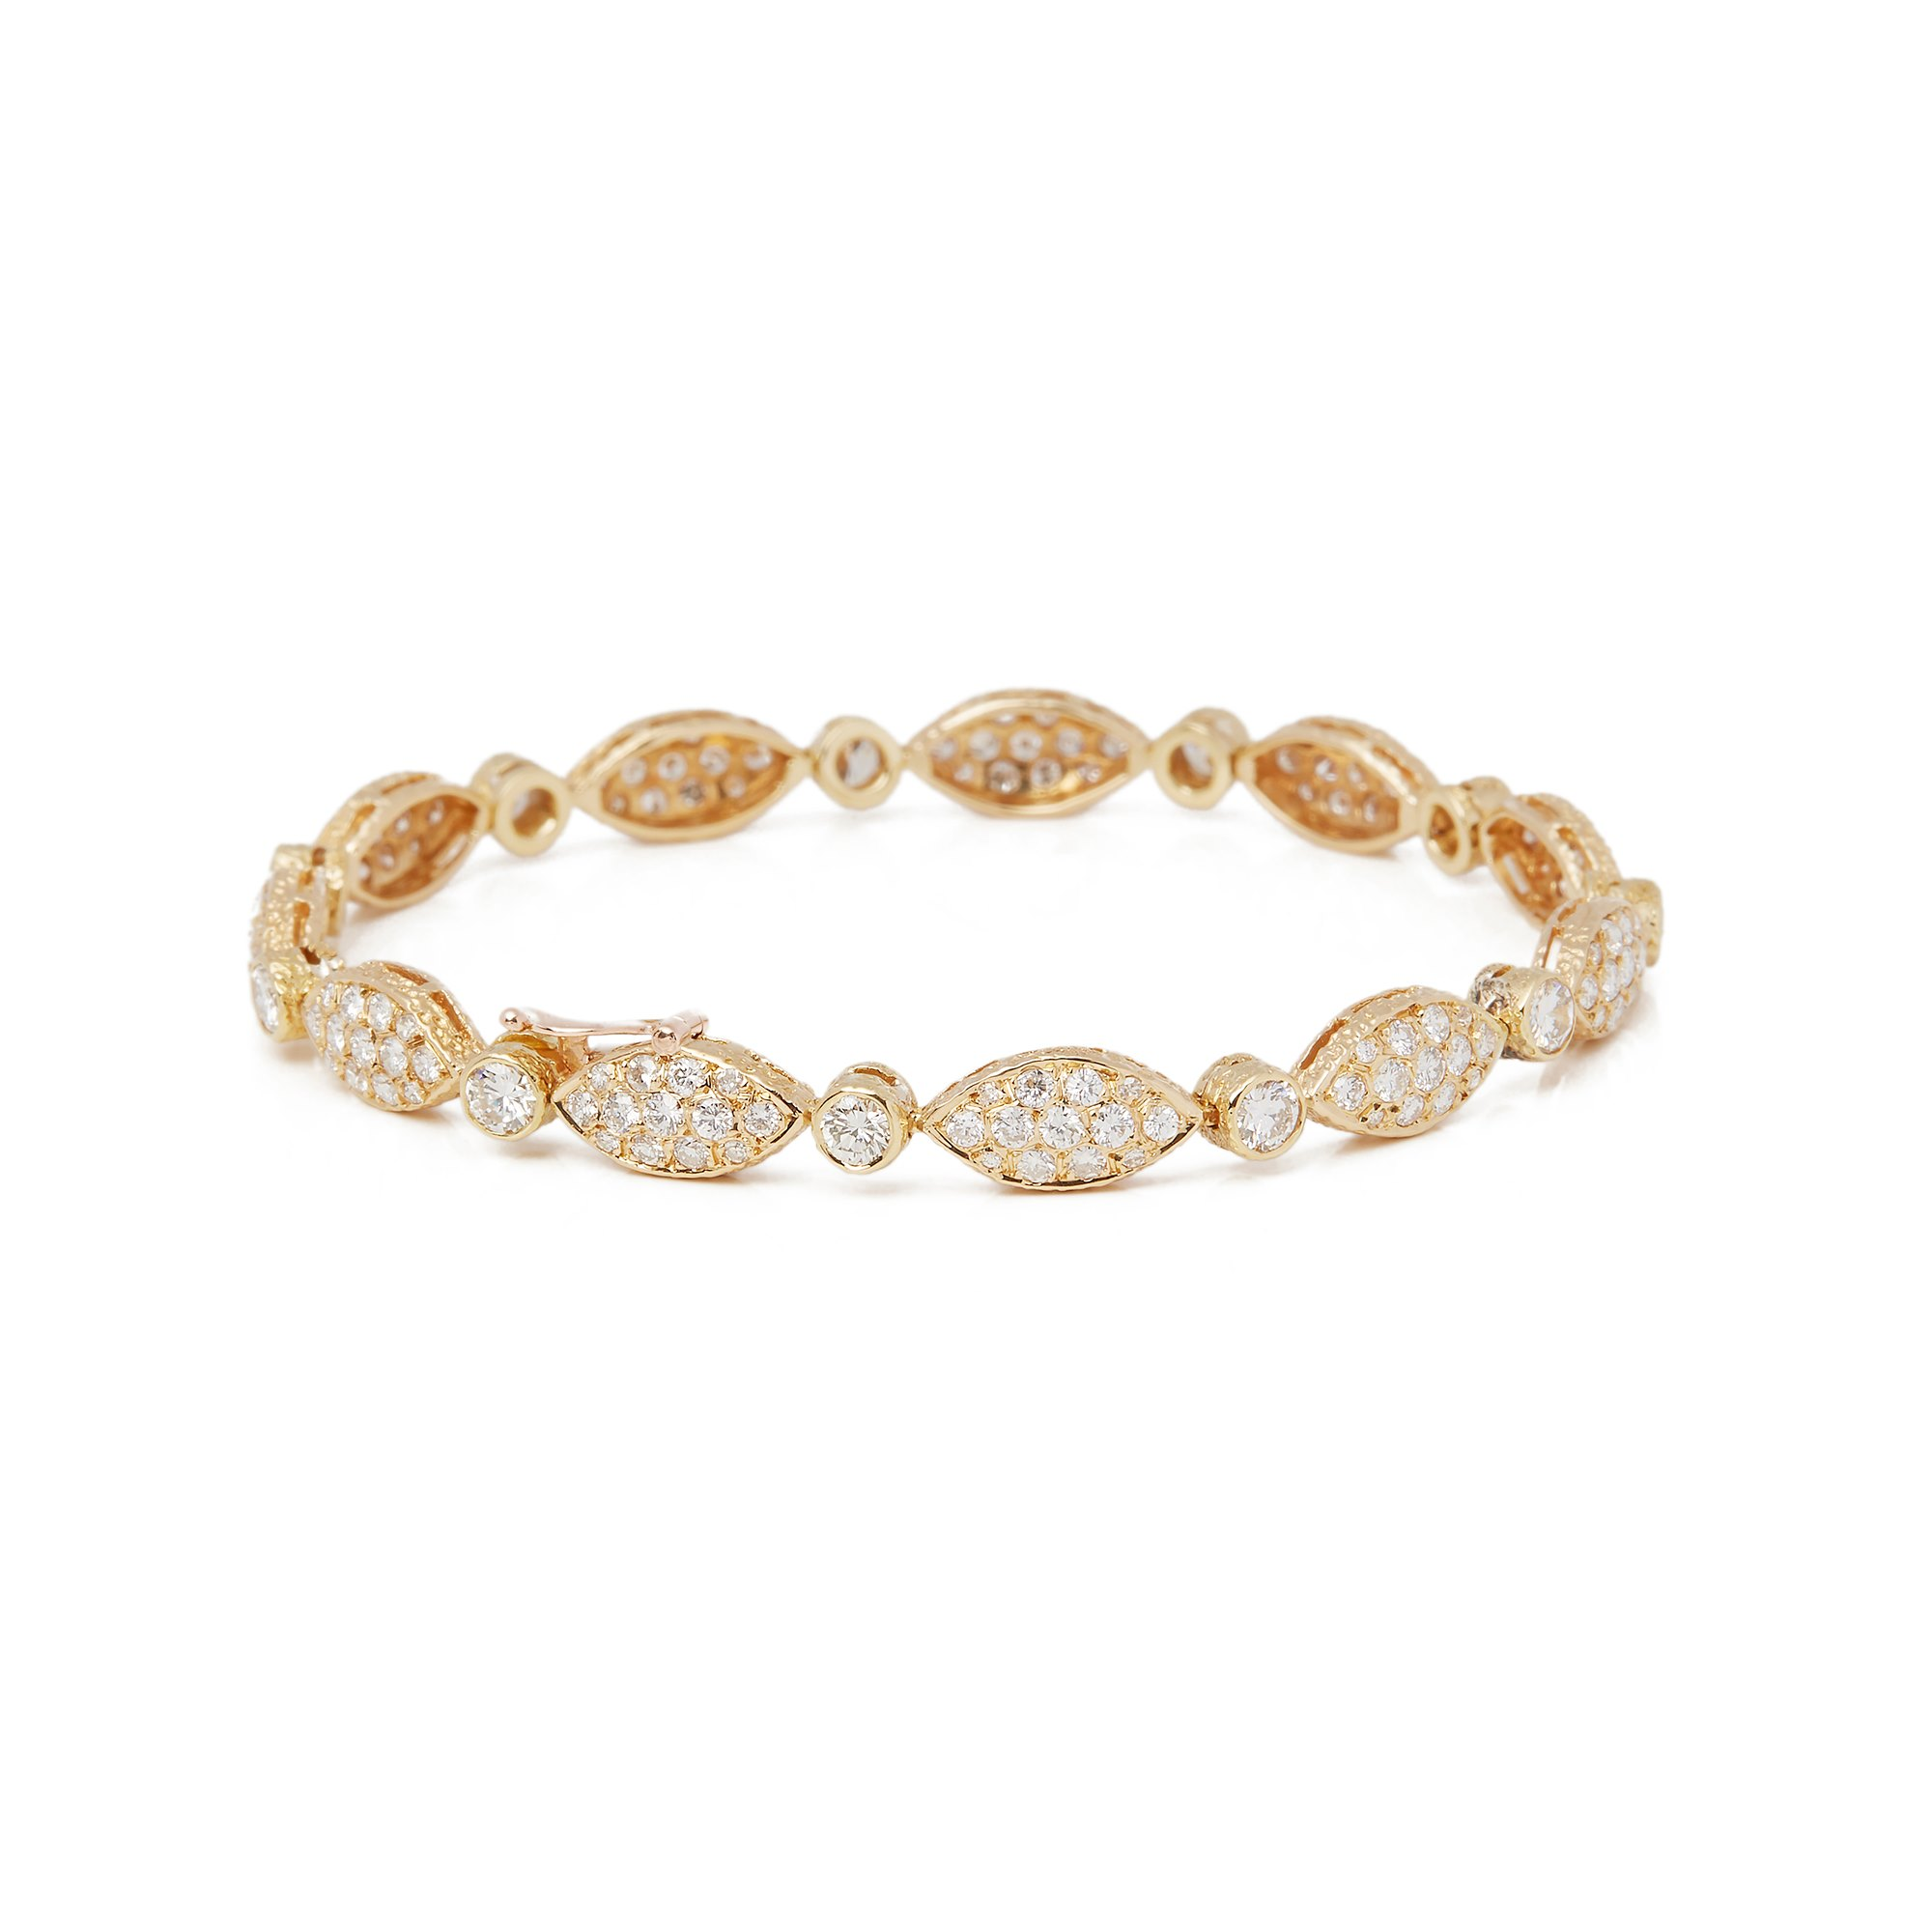 Van Cleef & Arpels 18k Yellow Gold Diamond Bracelet